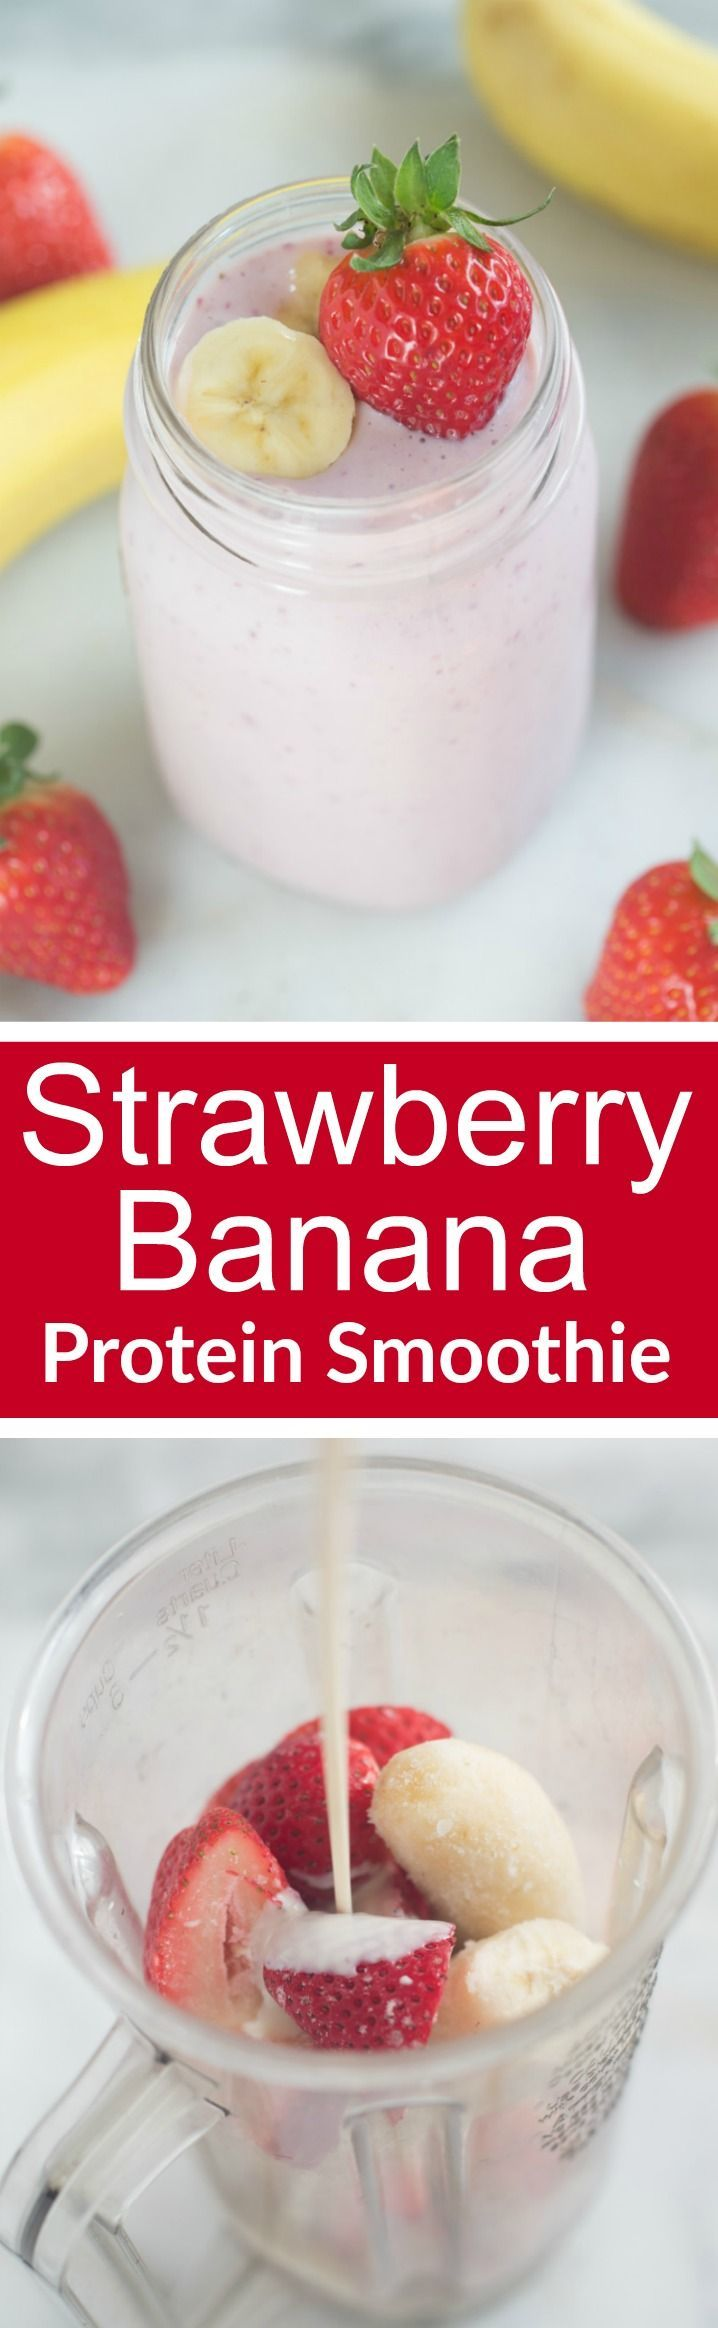 The BEST fresh Strawberry and Banana Protein Smoothie, with a secret ingredient! | Tastes Better From Scratch @LoveMySilk #ad